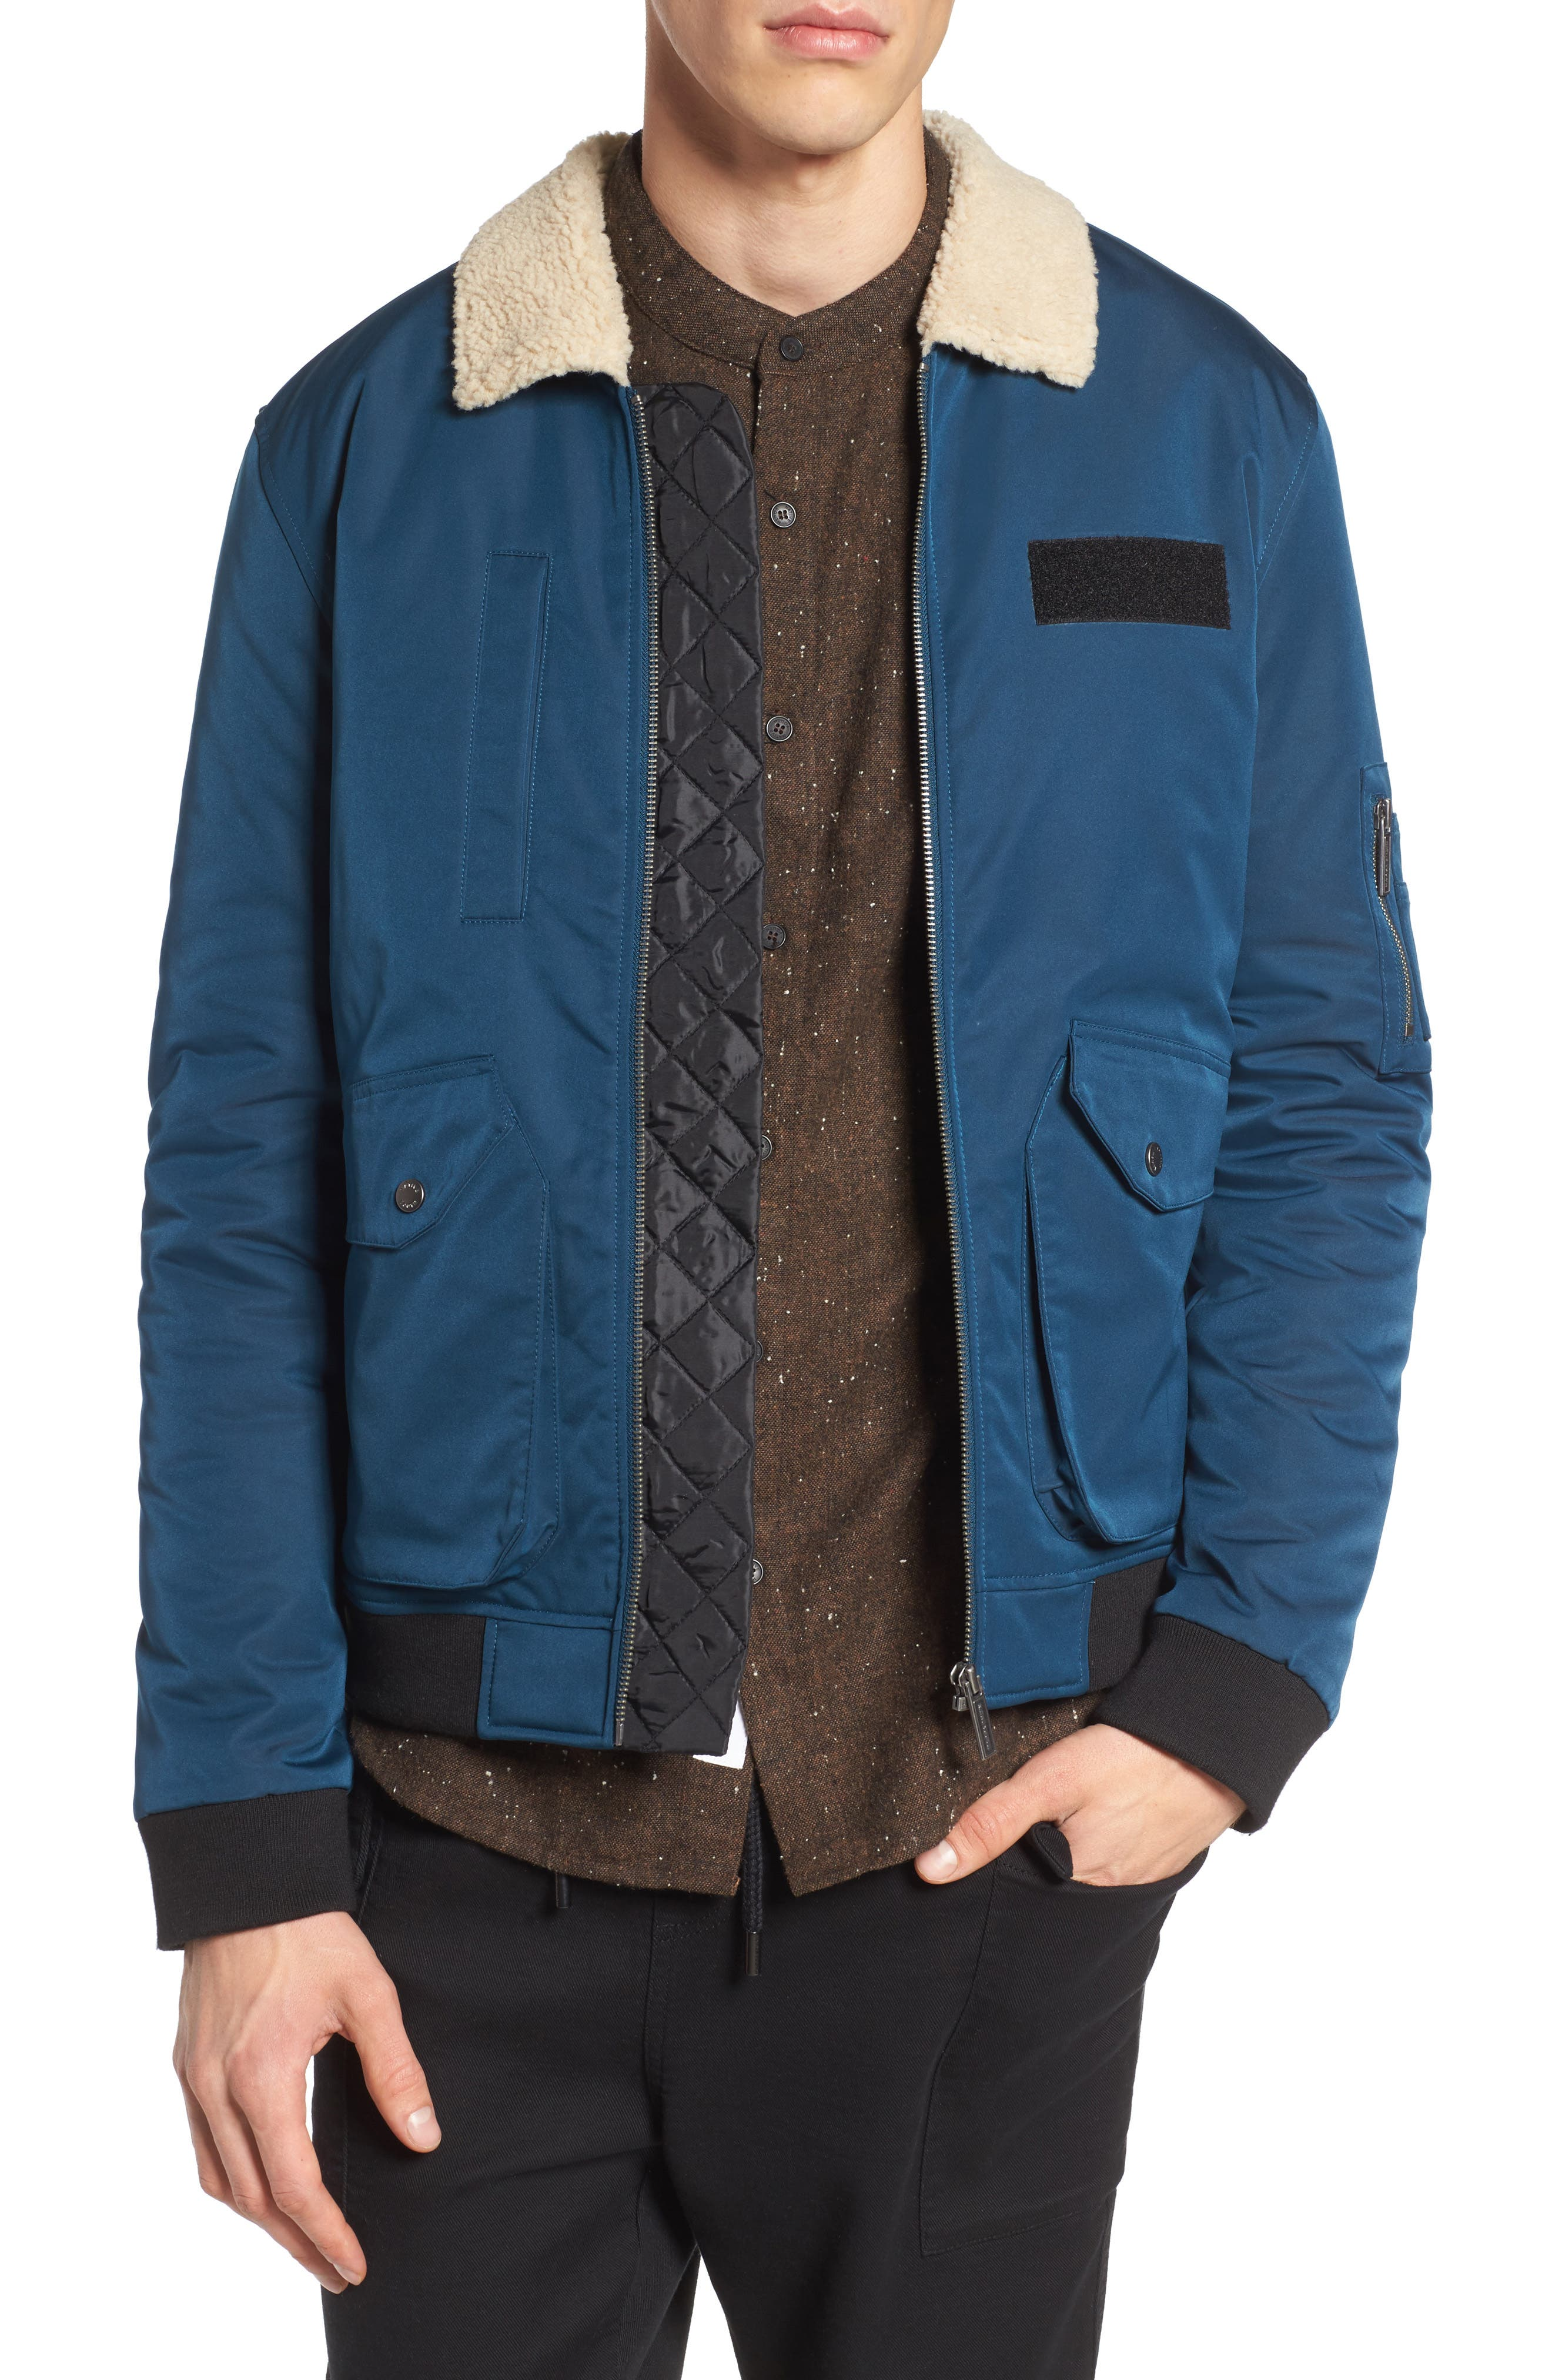 Stamford Jacket,                         Main,                         color, Petrol Blue